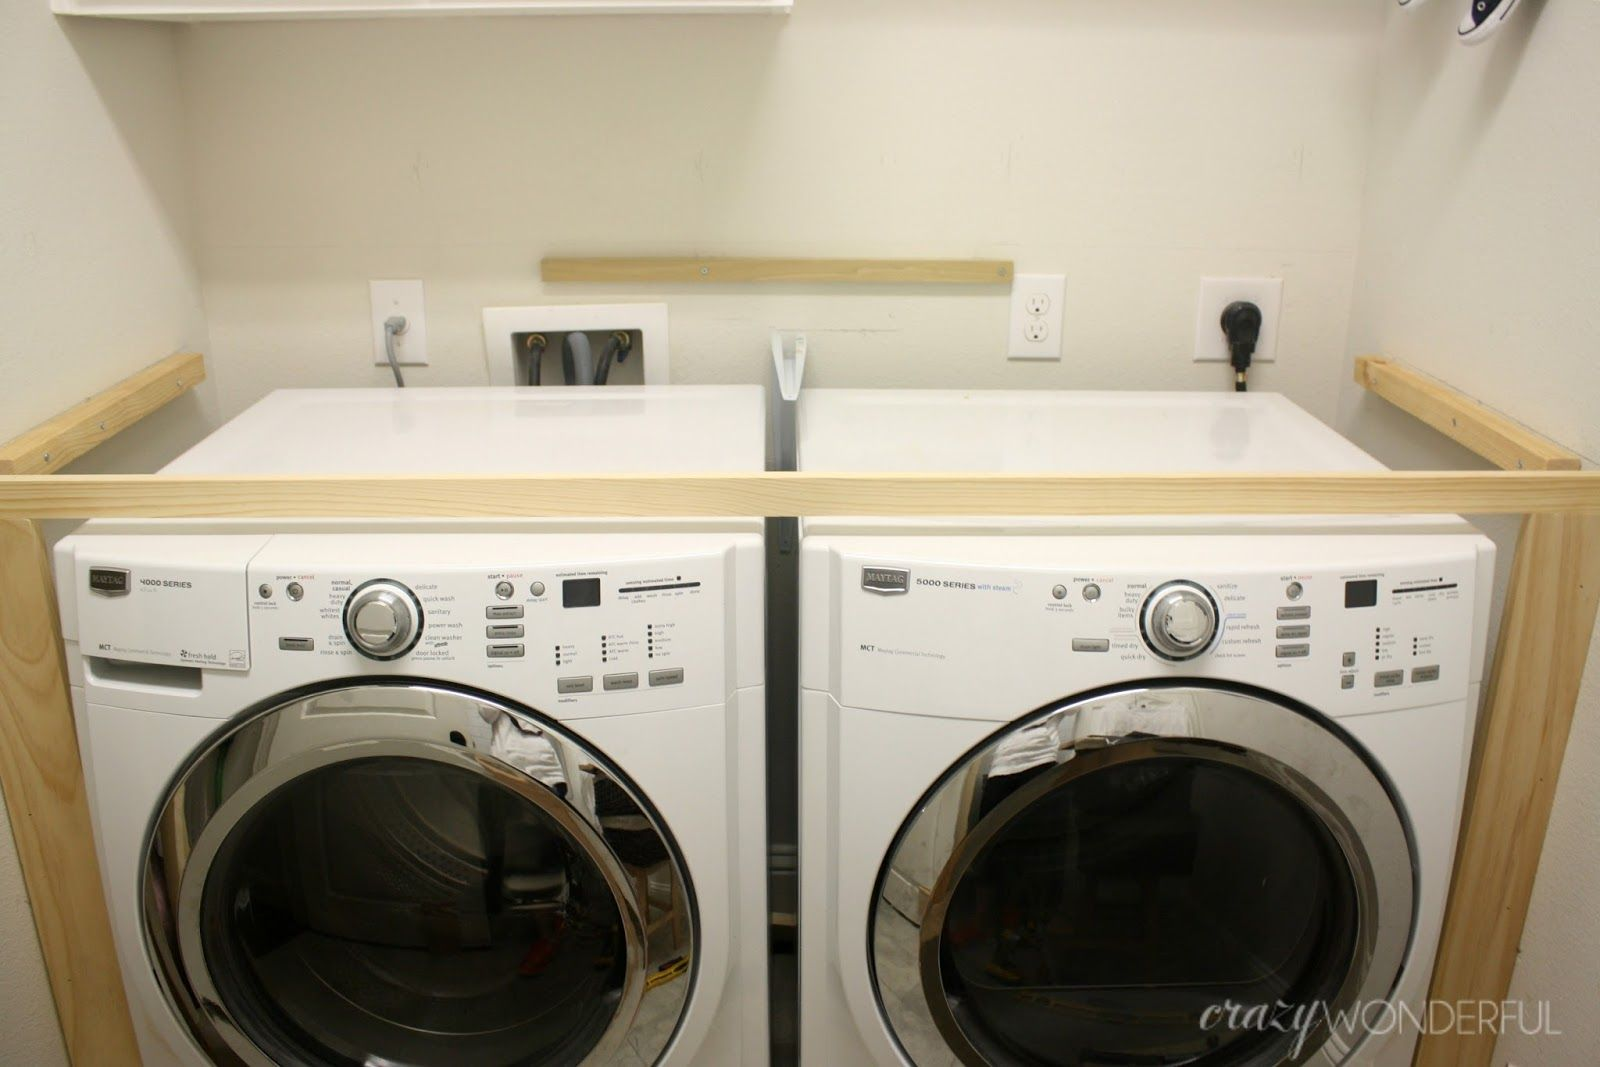 crazy wonderful diy built in washer dryer laundry